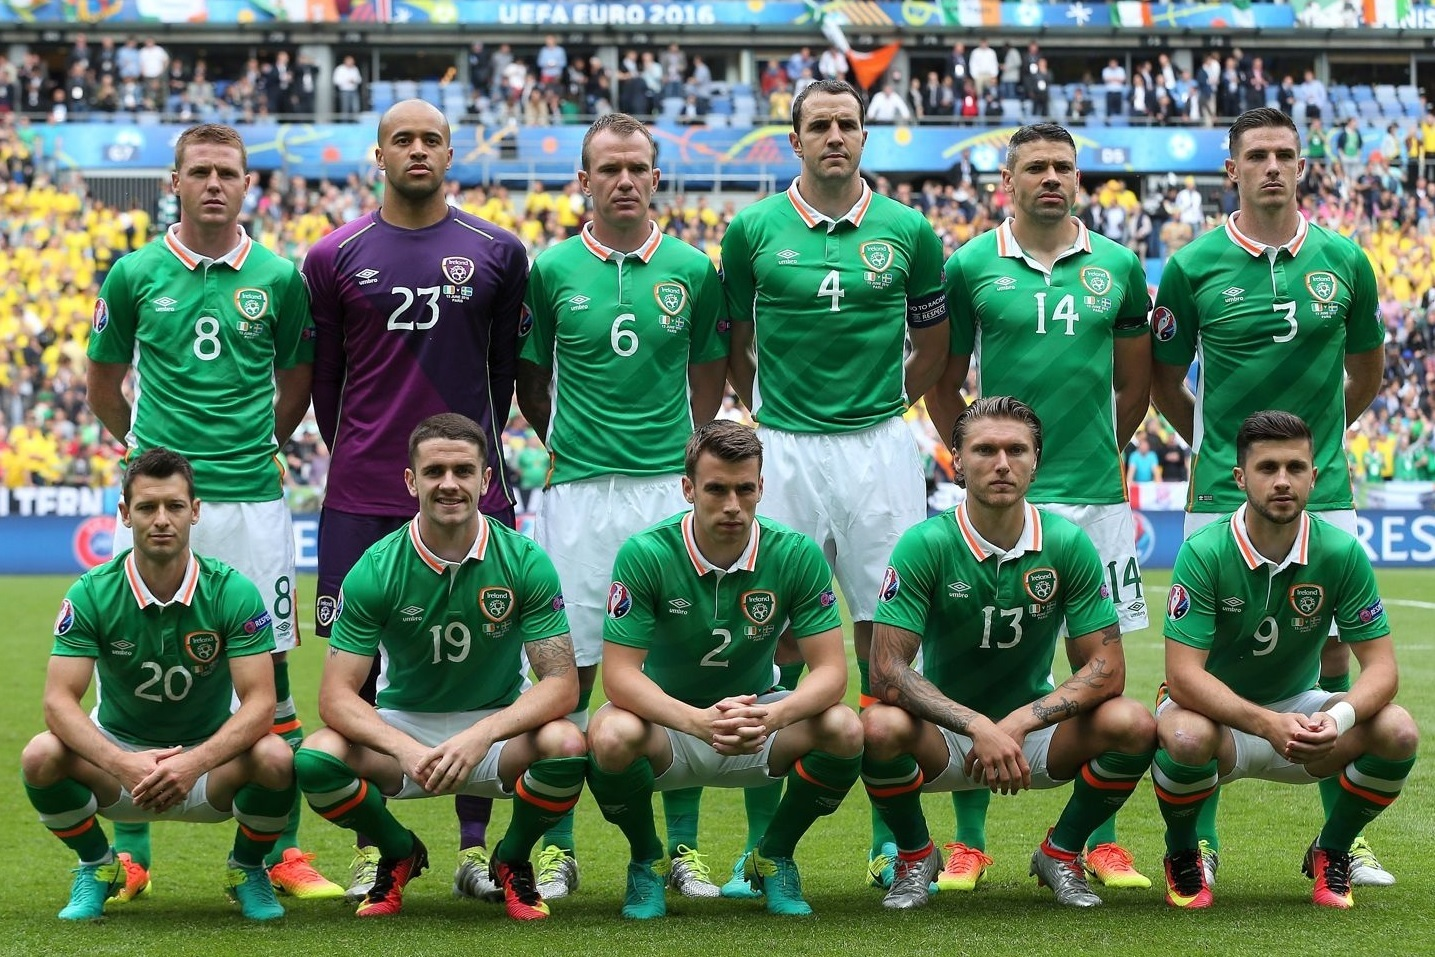 Ireland-2016-UMBRO-home-kit-green-white-green-line-up.jpg